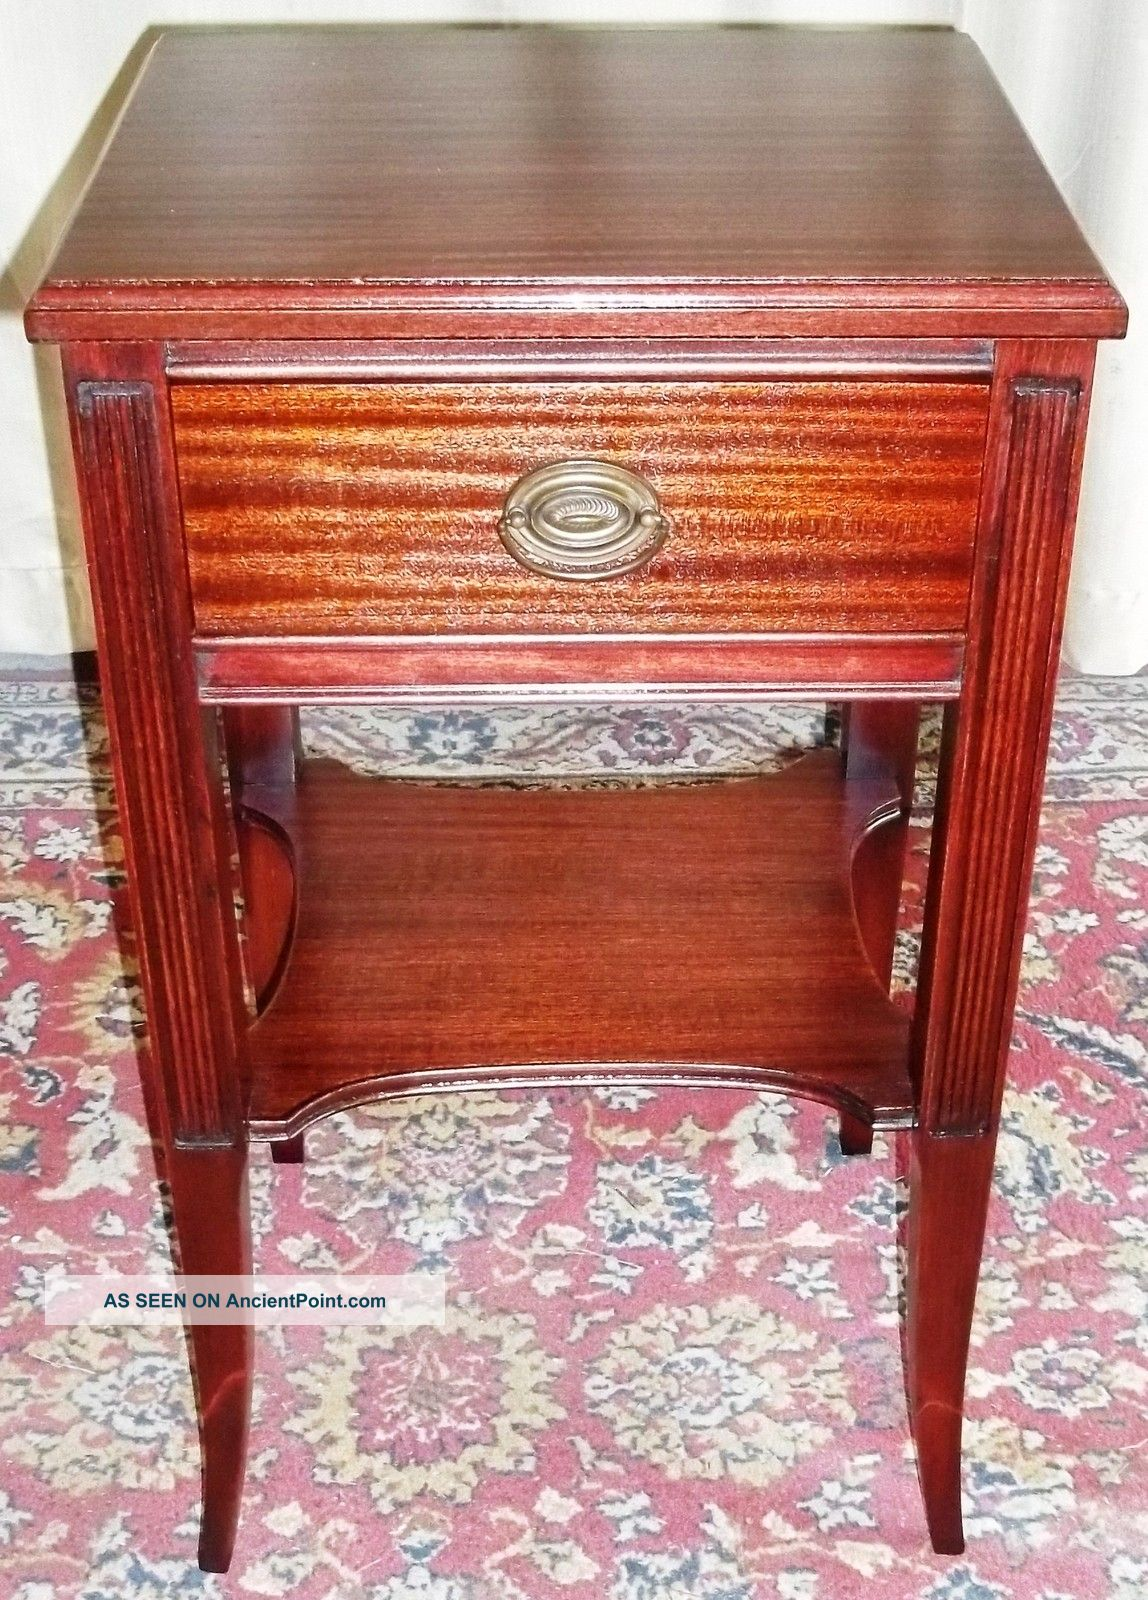 Antique Mahogany Square Two Tier Table With Drawer 1900-1950 photo